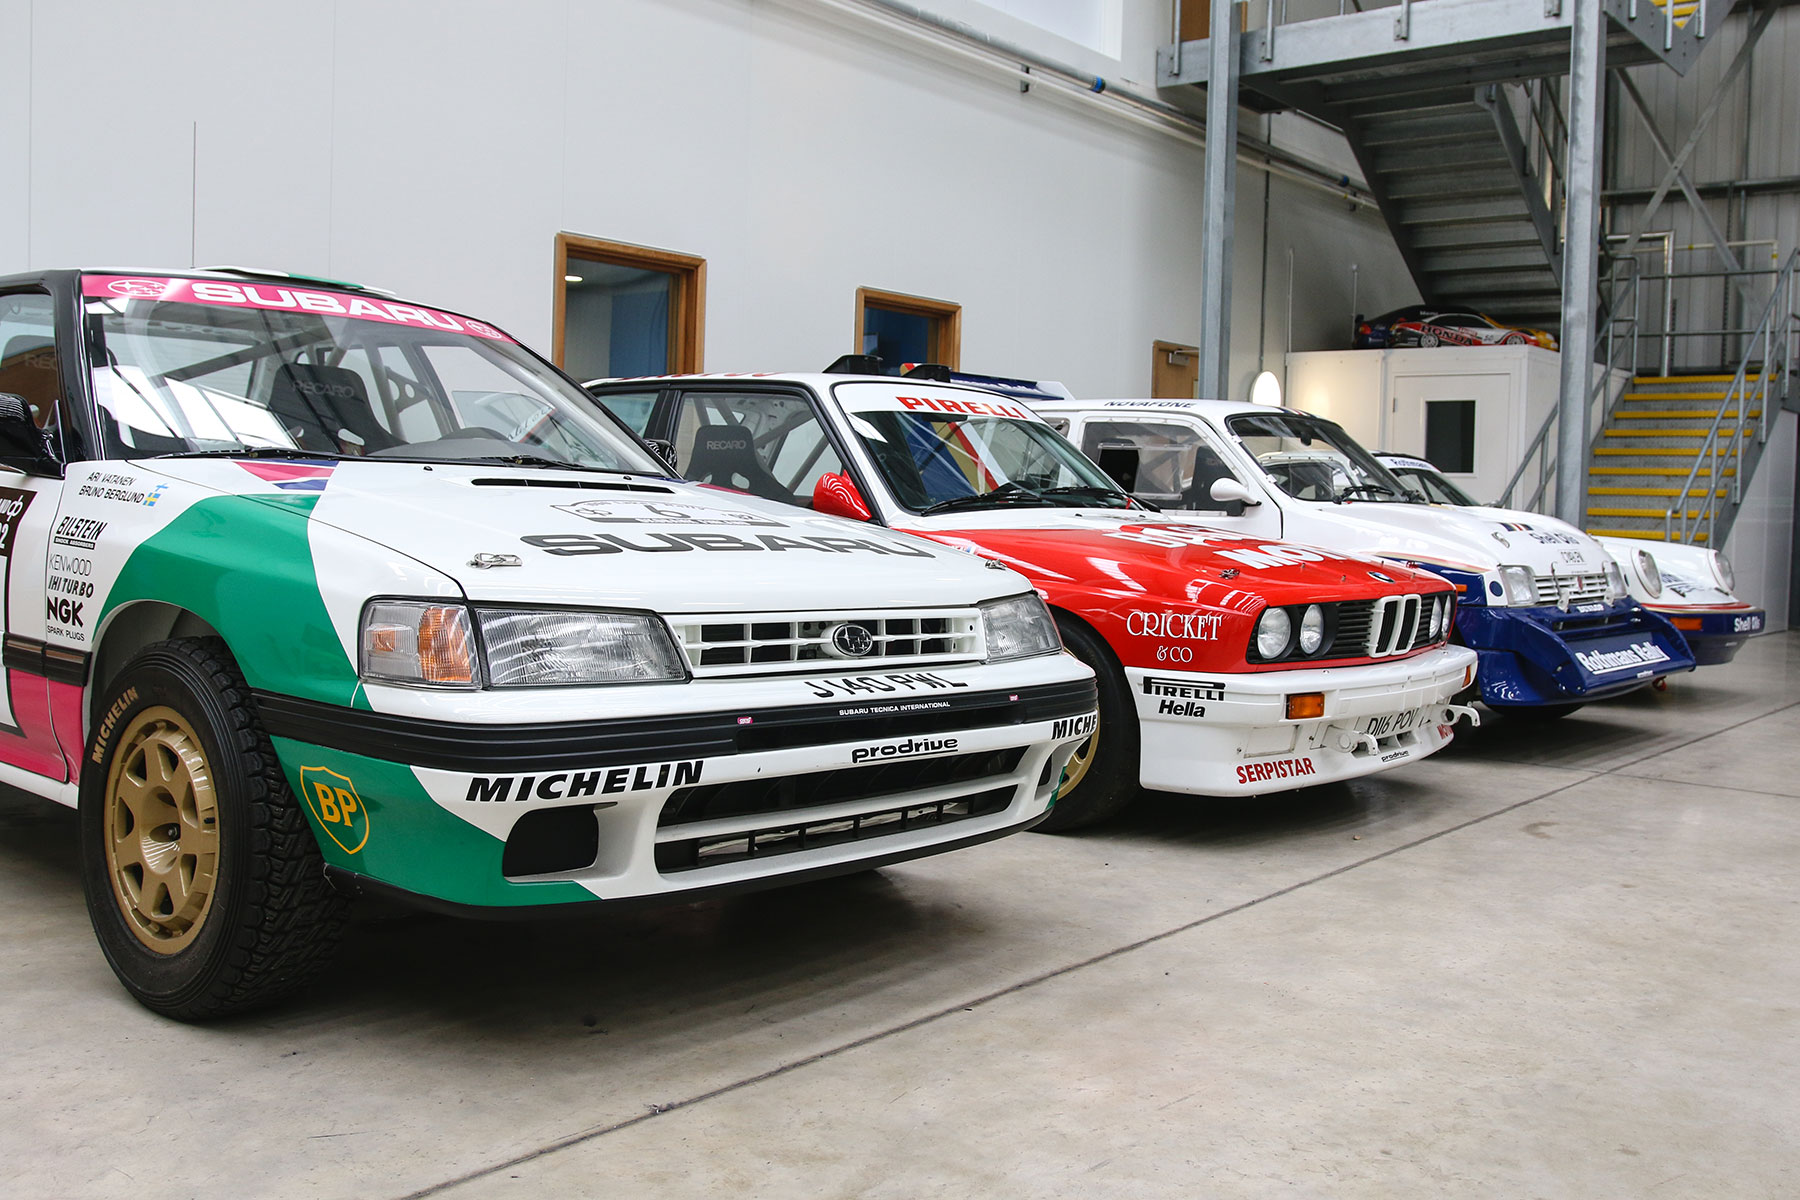 Video: Prodrive\'s amazing race and rally car collection